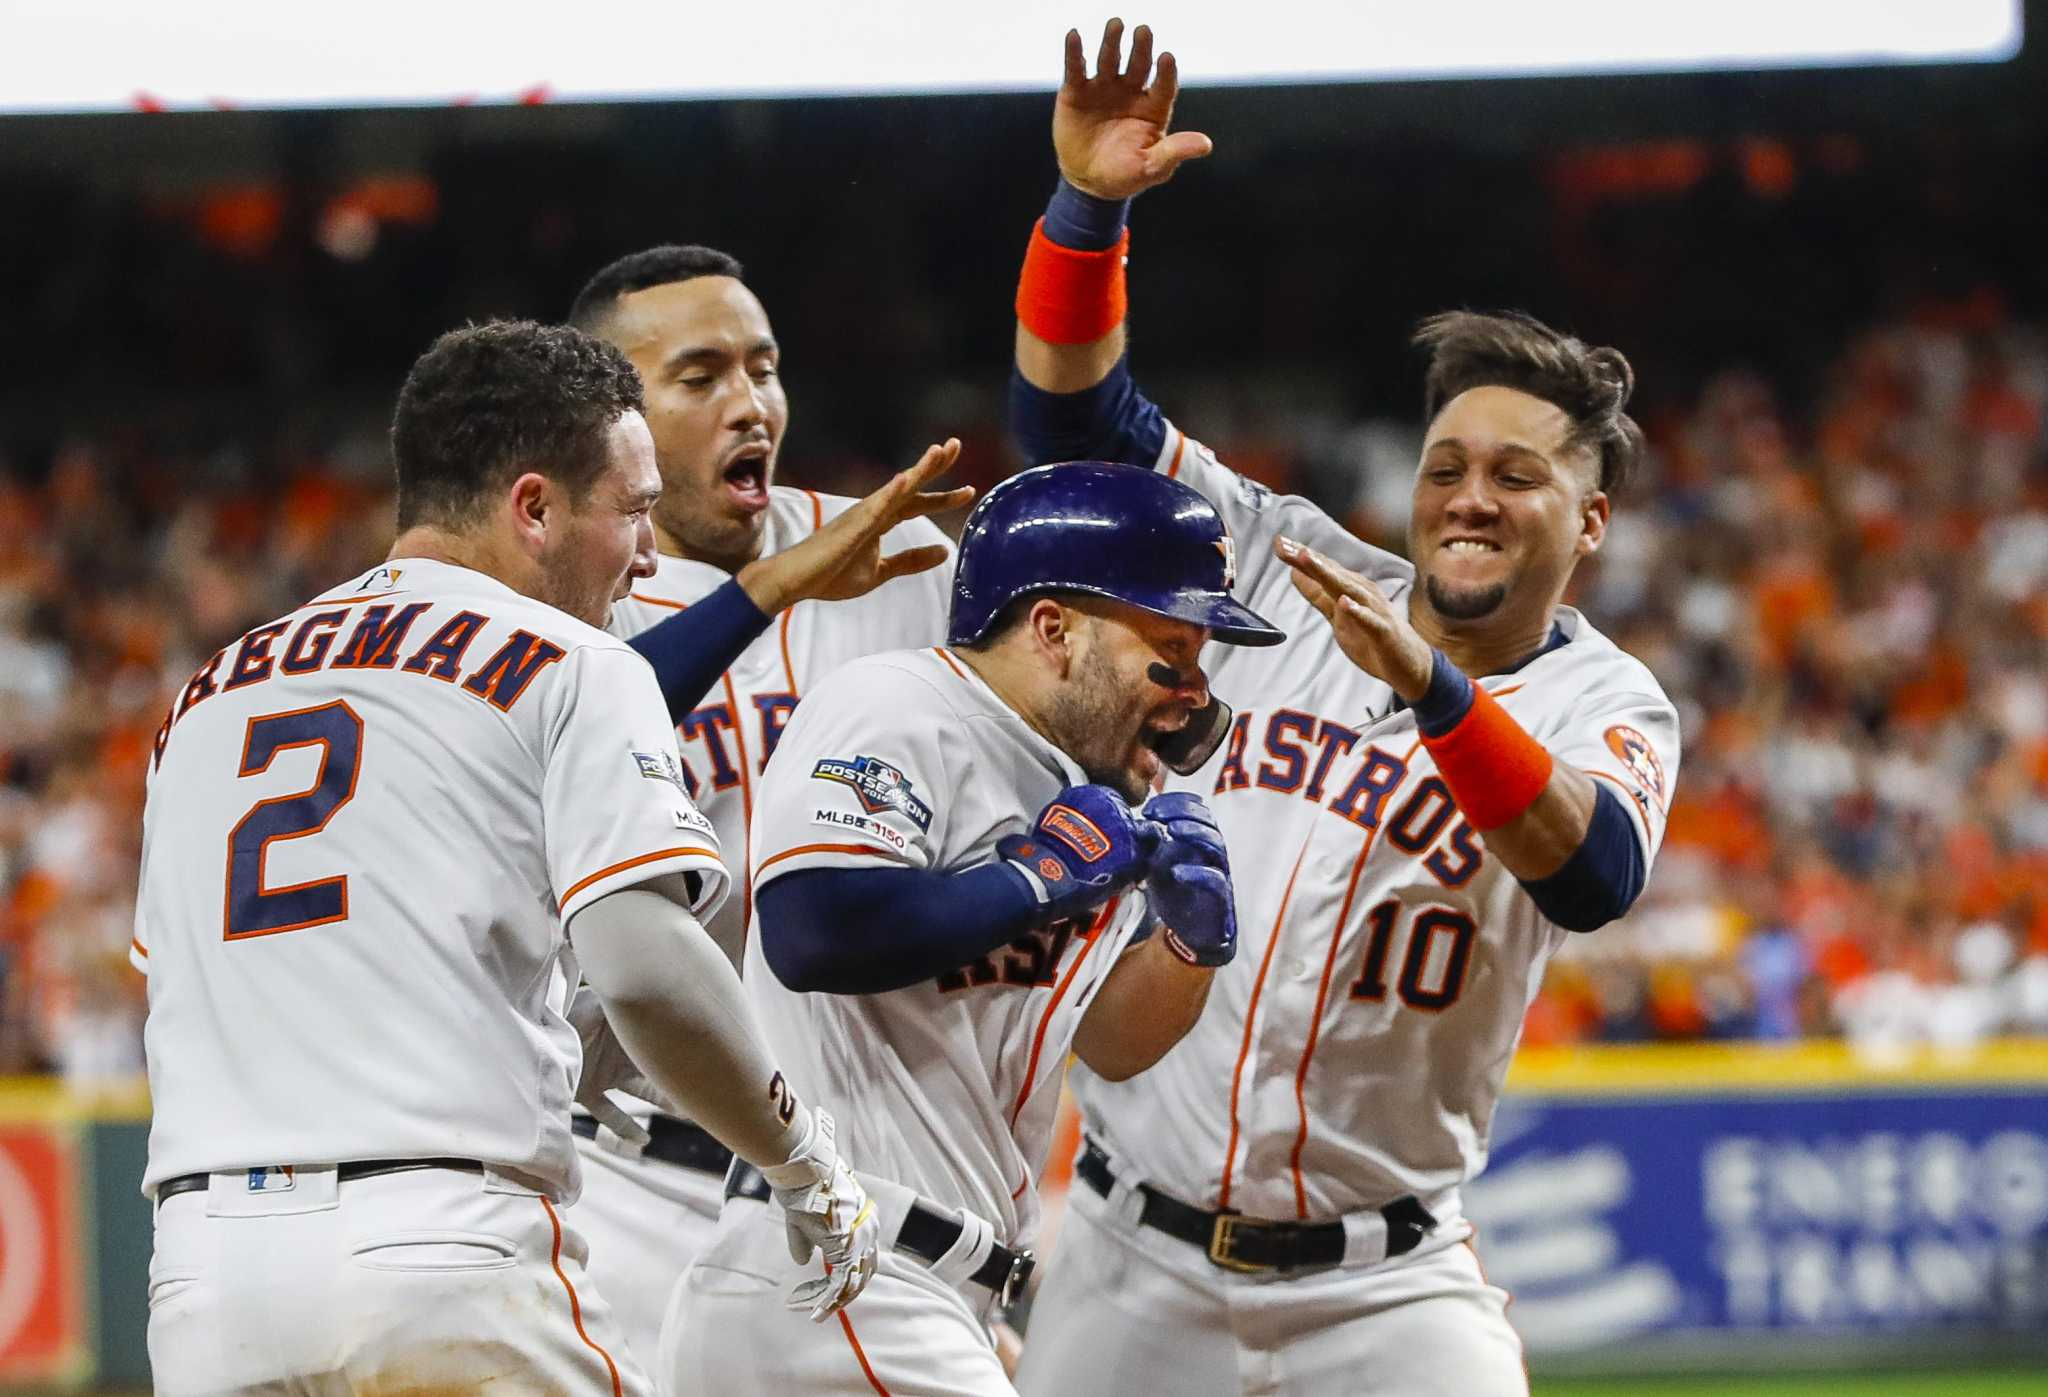 Astros advance to World Series with Game 6 win